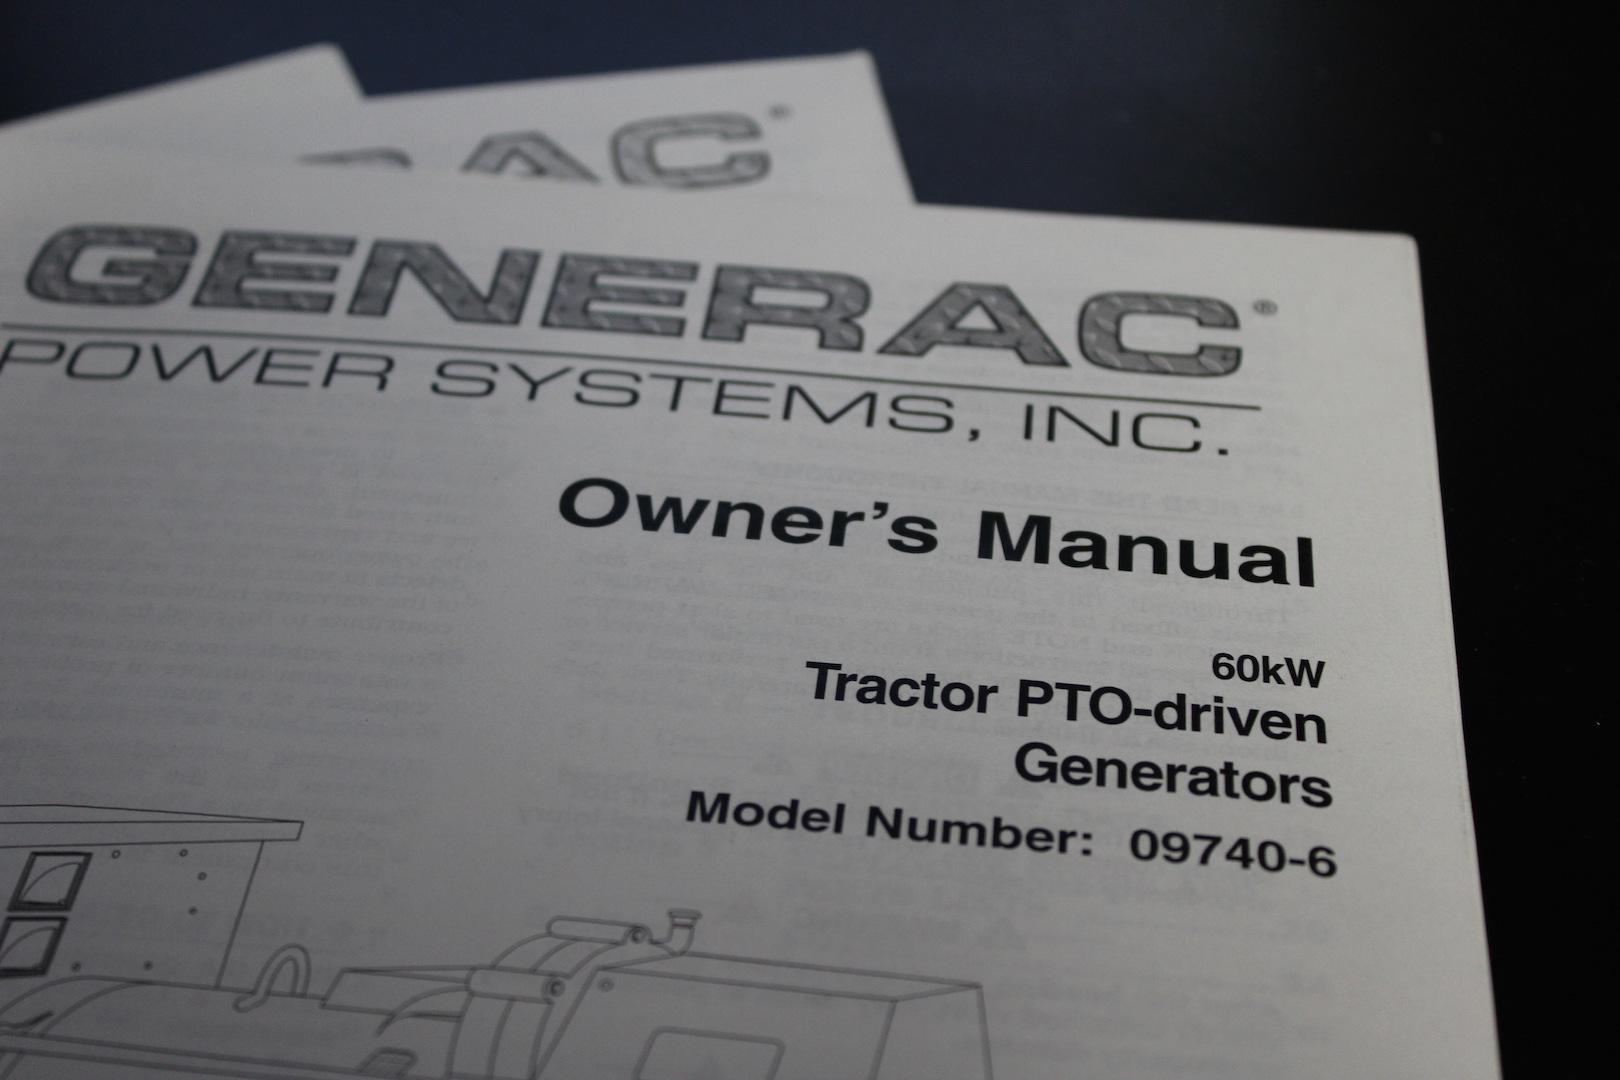 generac back up power generator manual [ 1500 x 1000 Pixel ]